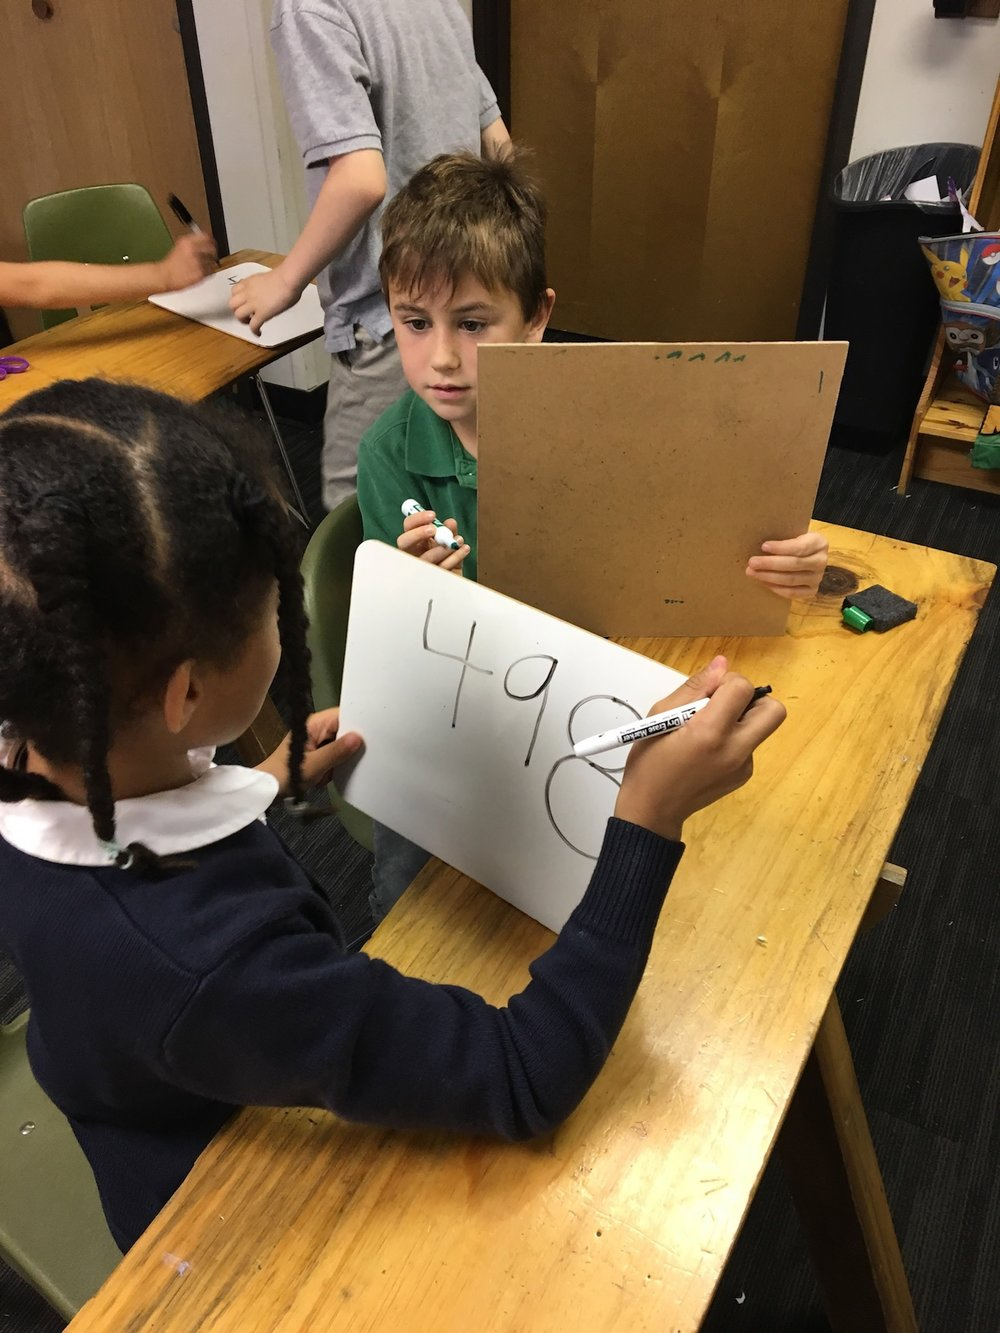 For the first class of 'Make it to the Top' students reviewed place value by playing a game where they had to guess the number their partner came up with. The student that made up the number would tell their partner if they got any digits correct or if a place of a number was correct.